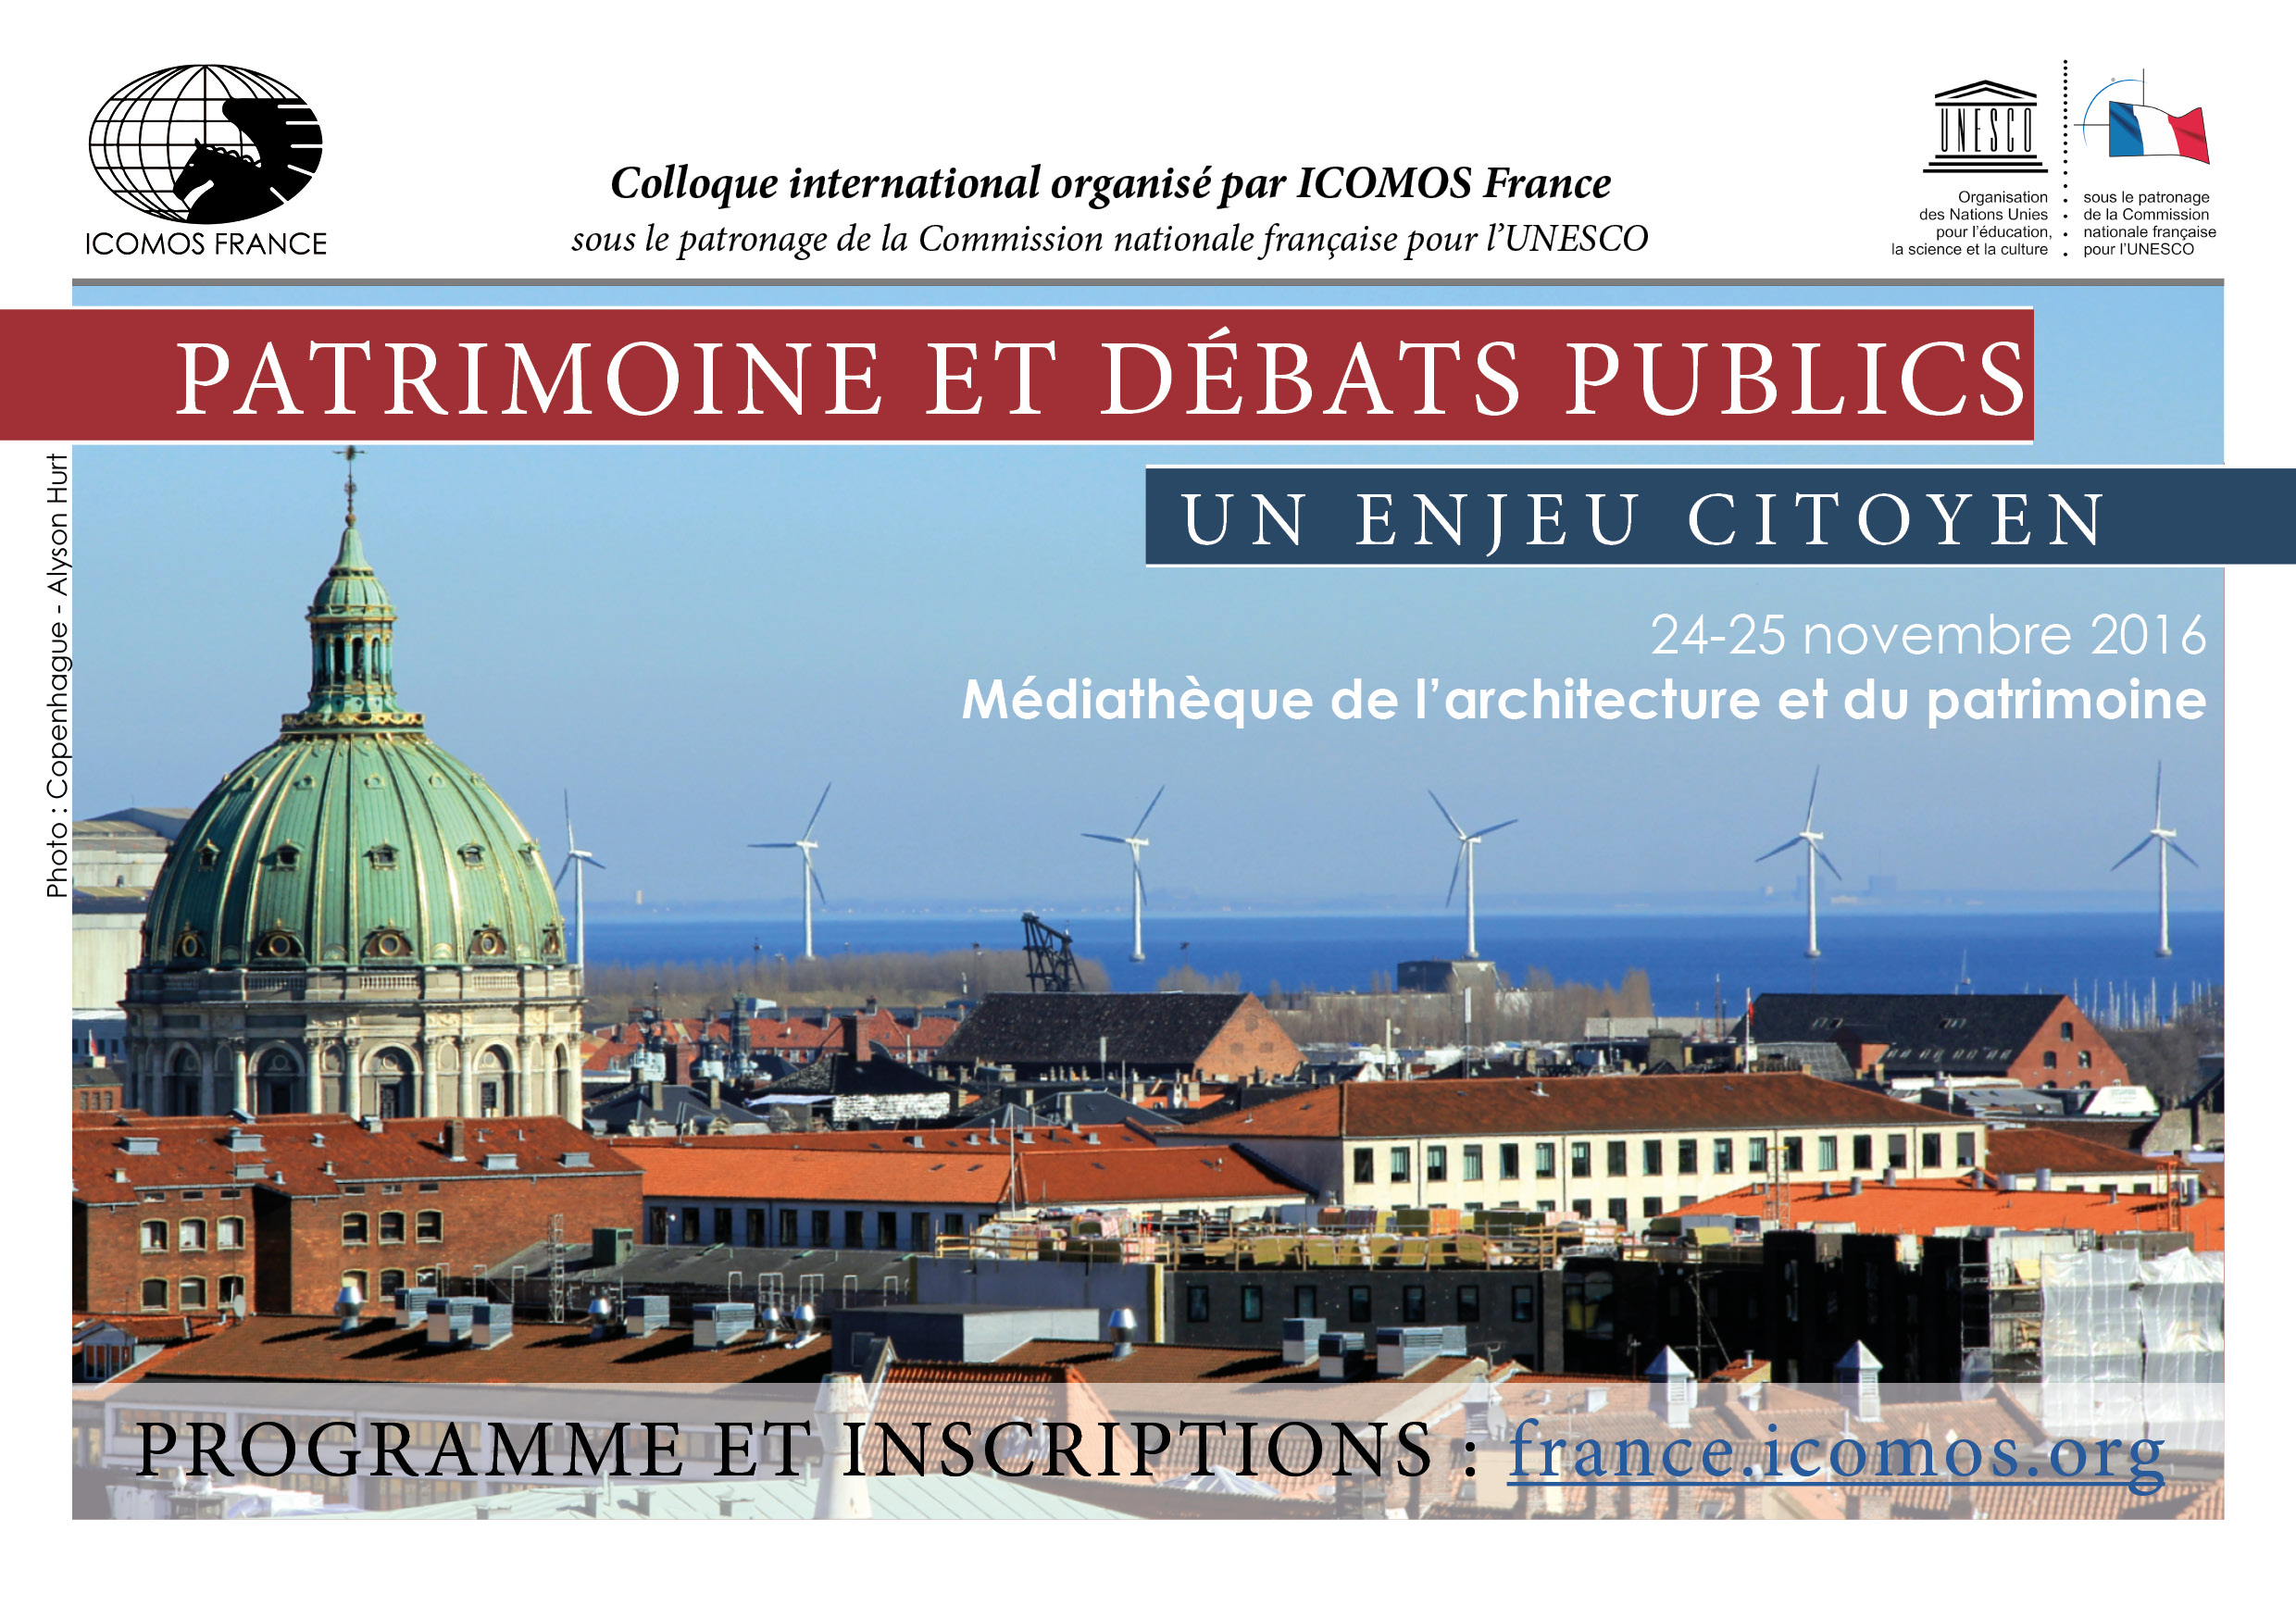 http://france.icomos.org/resources/library/0/flyer_final_recto.jpg